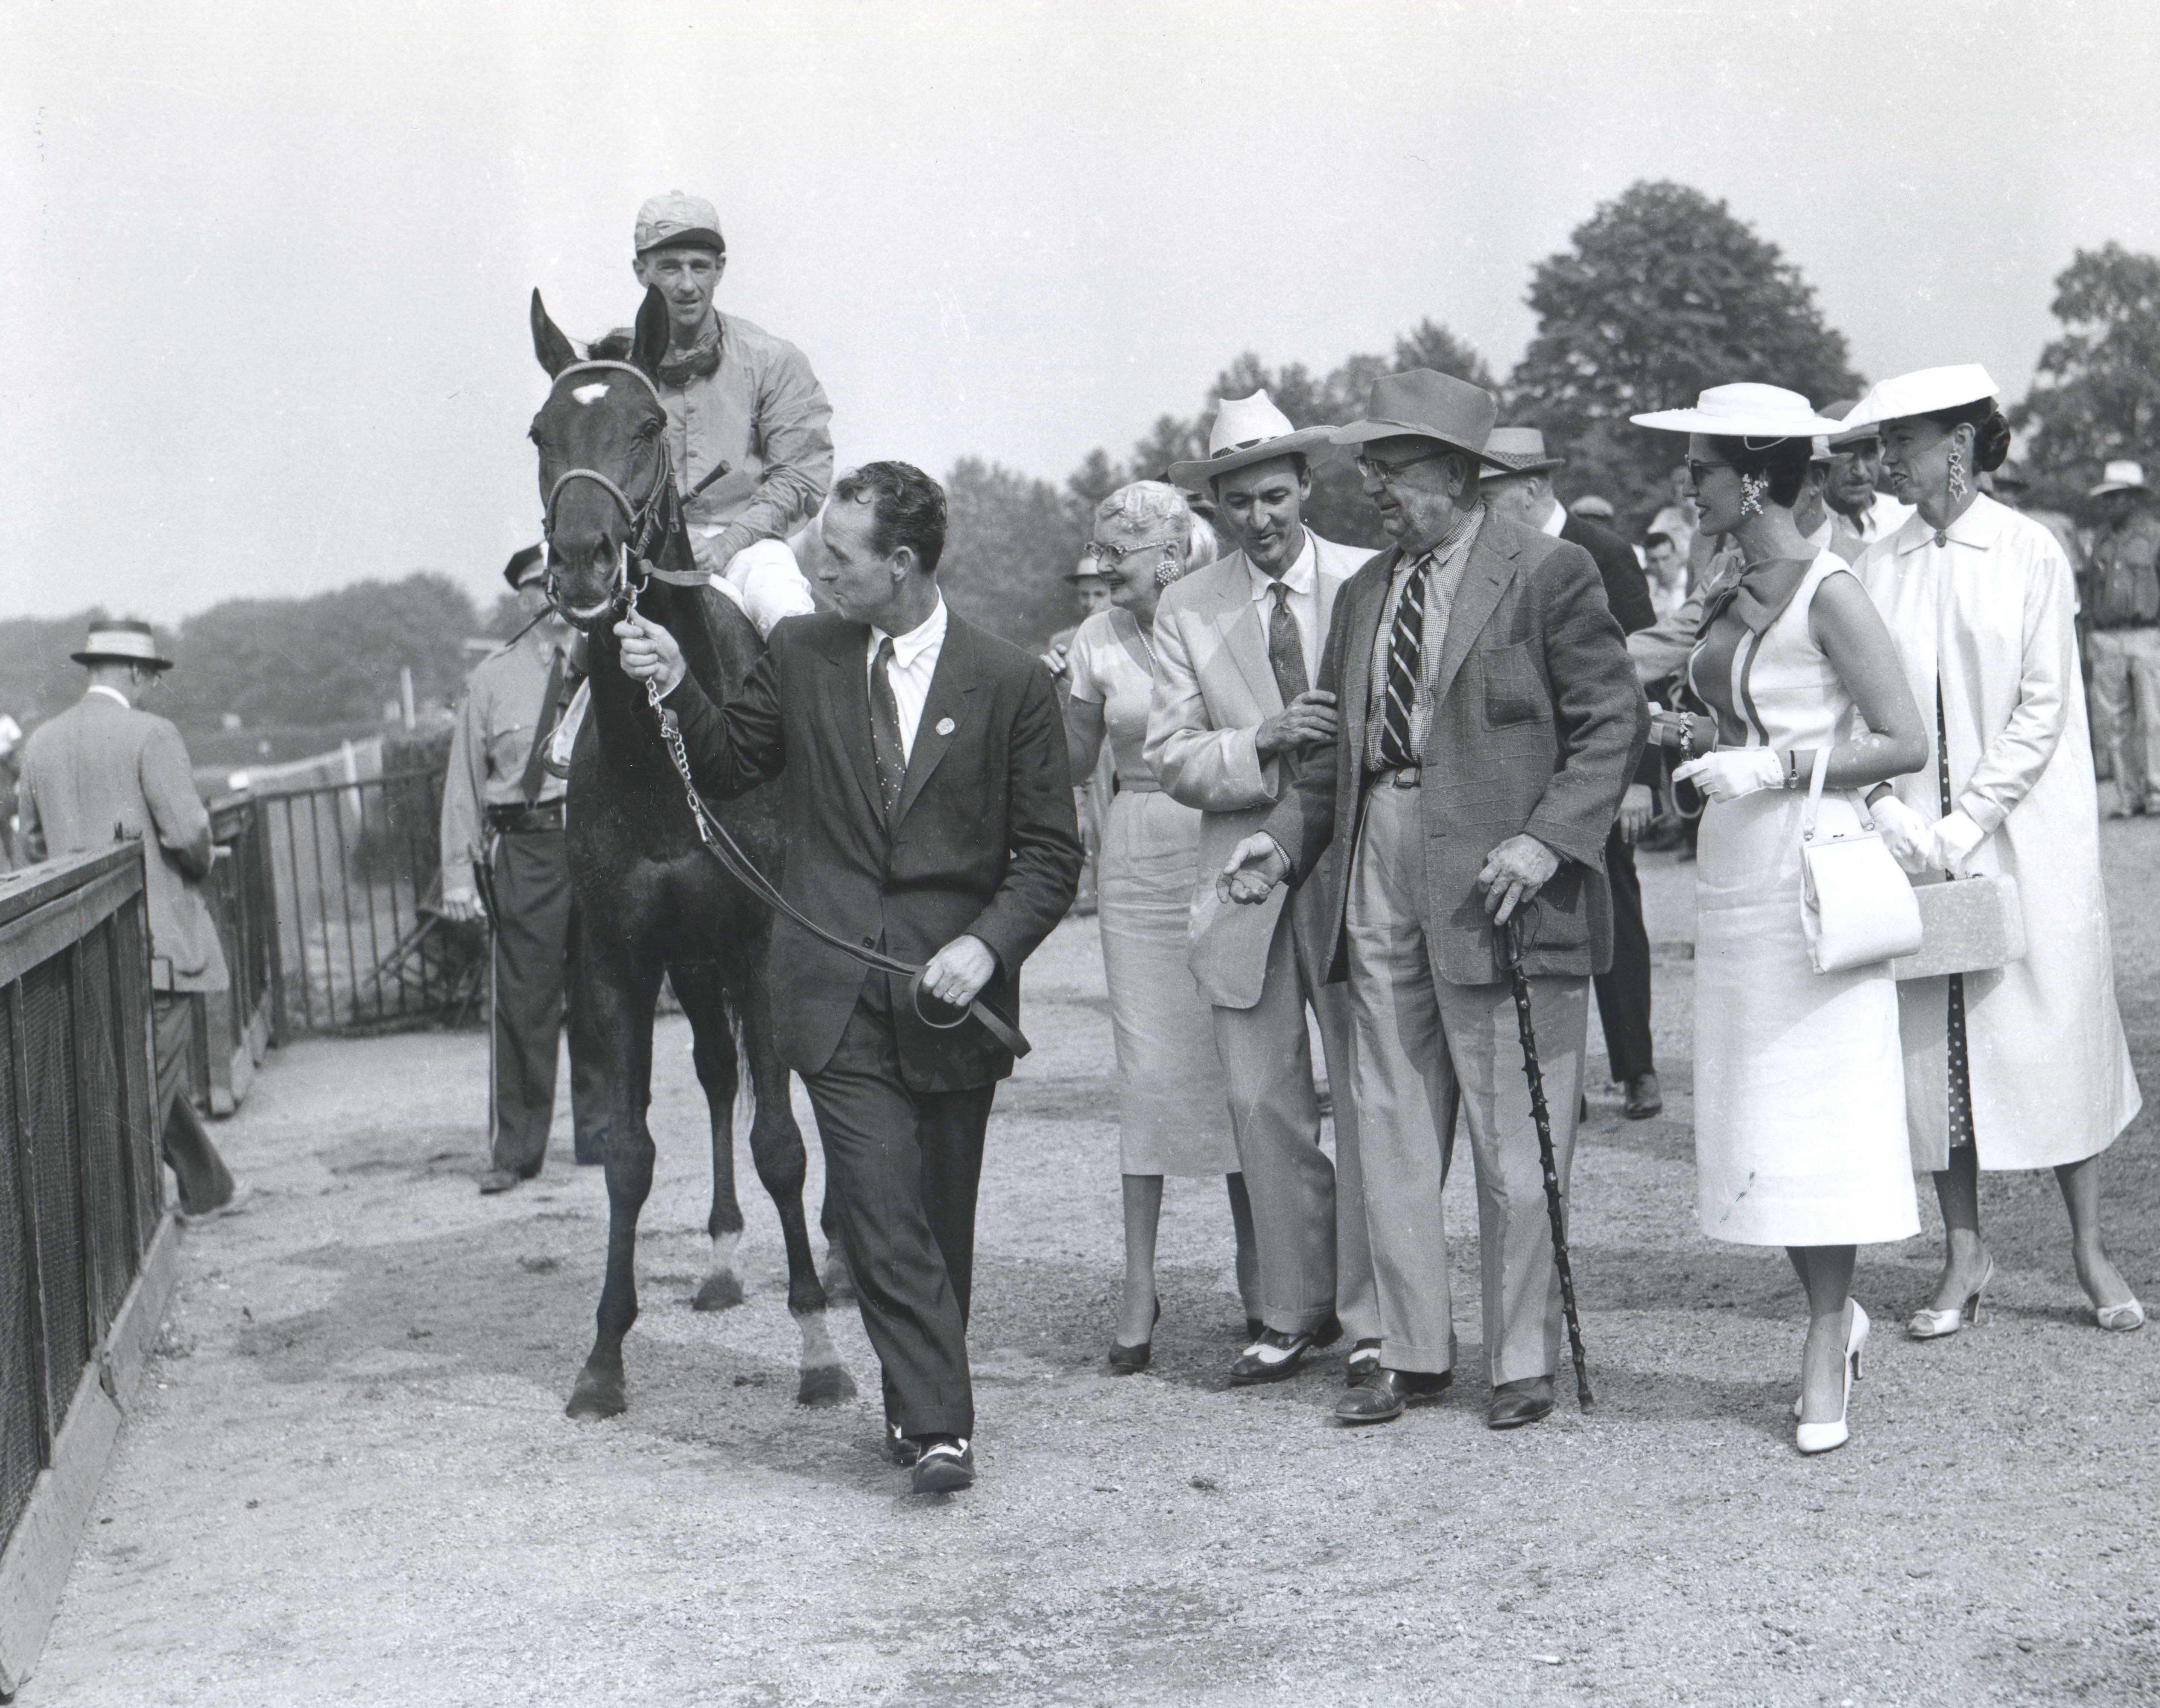 Needles (Dave Erb up) on his way to the winner's circle after winning the 1956 Belmont Stakes (Keeneland Library Morgan Collection/Museum Collection)